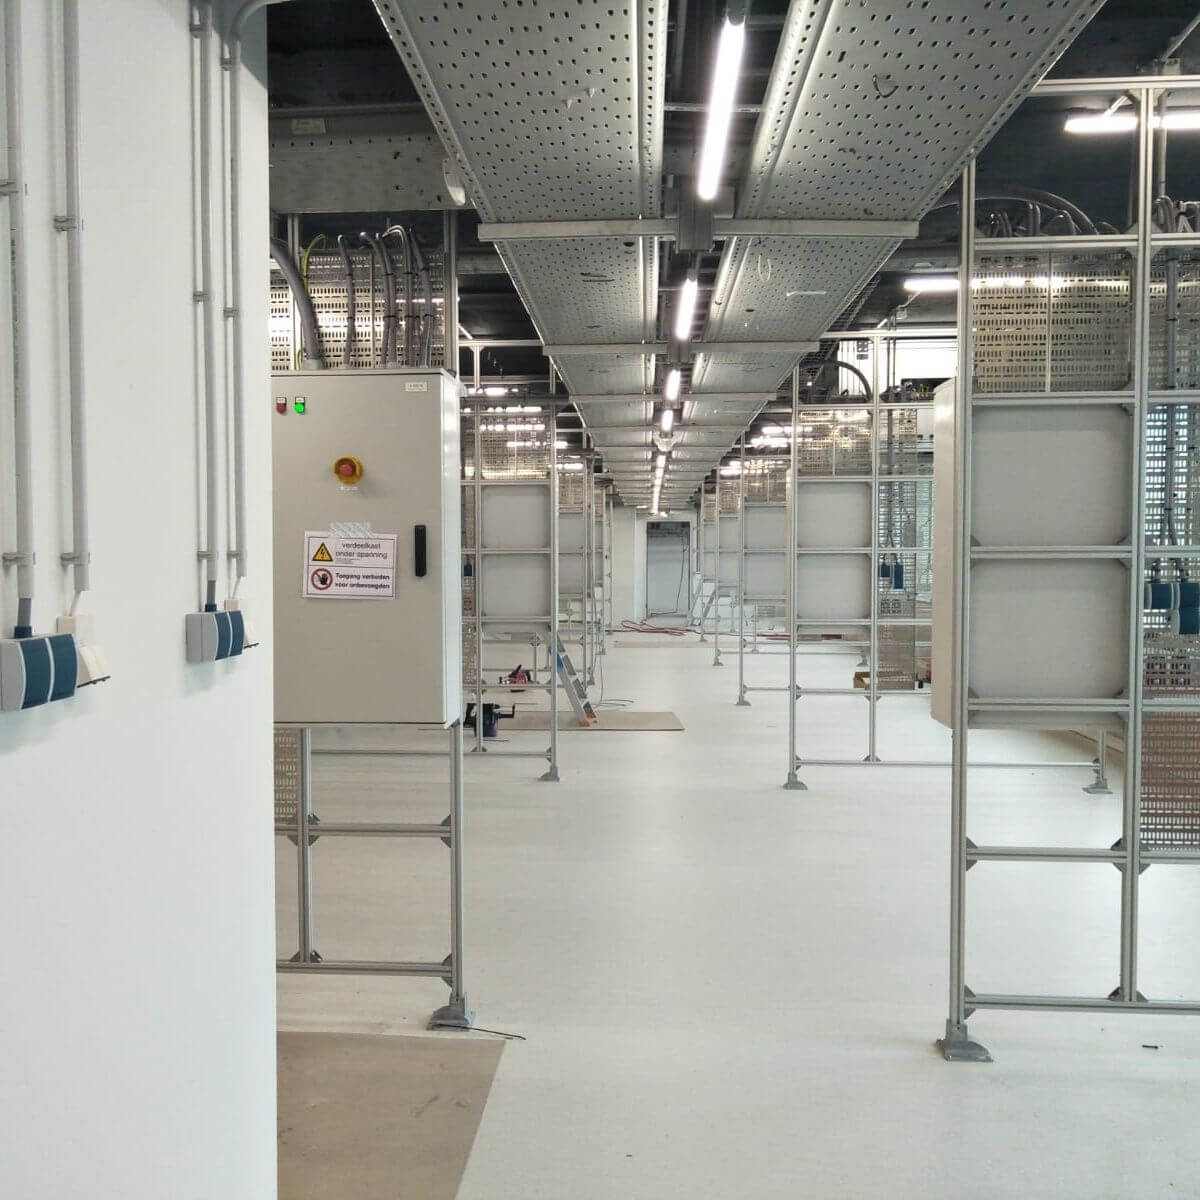 Cleanrooms and laboratory<em>Maintenance-free luminaires with a very long lifespan are of great importance for the continuity of a controlled cleanroom environment</em>